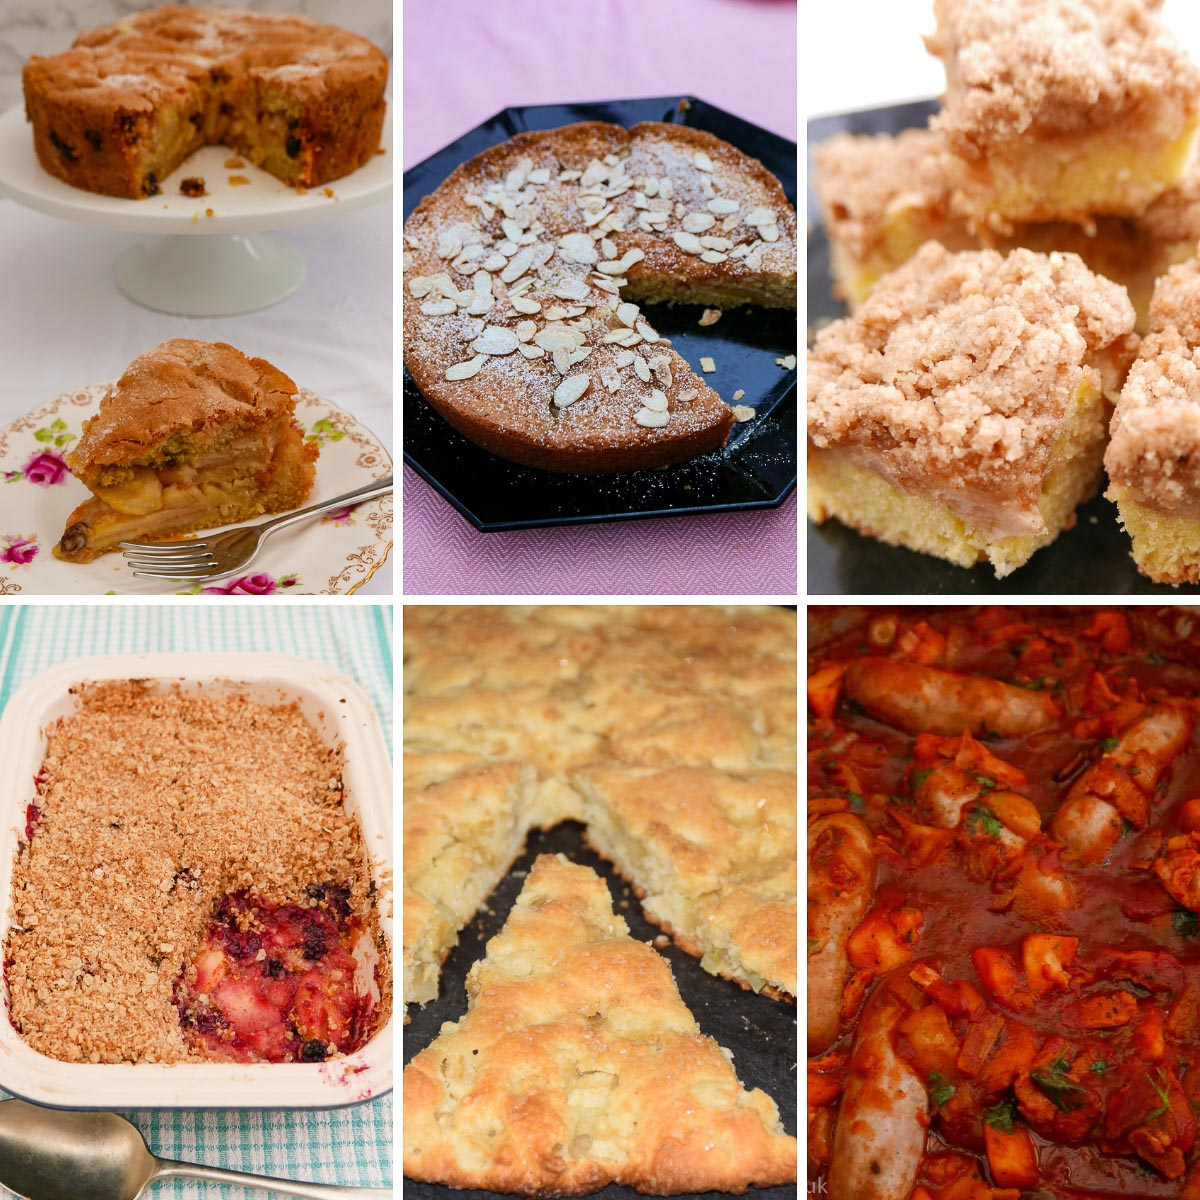 Cakes and puddings using apples or pears